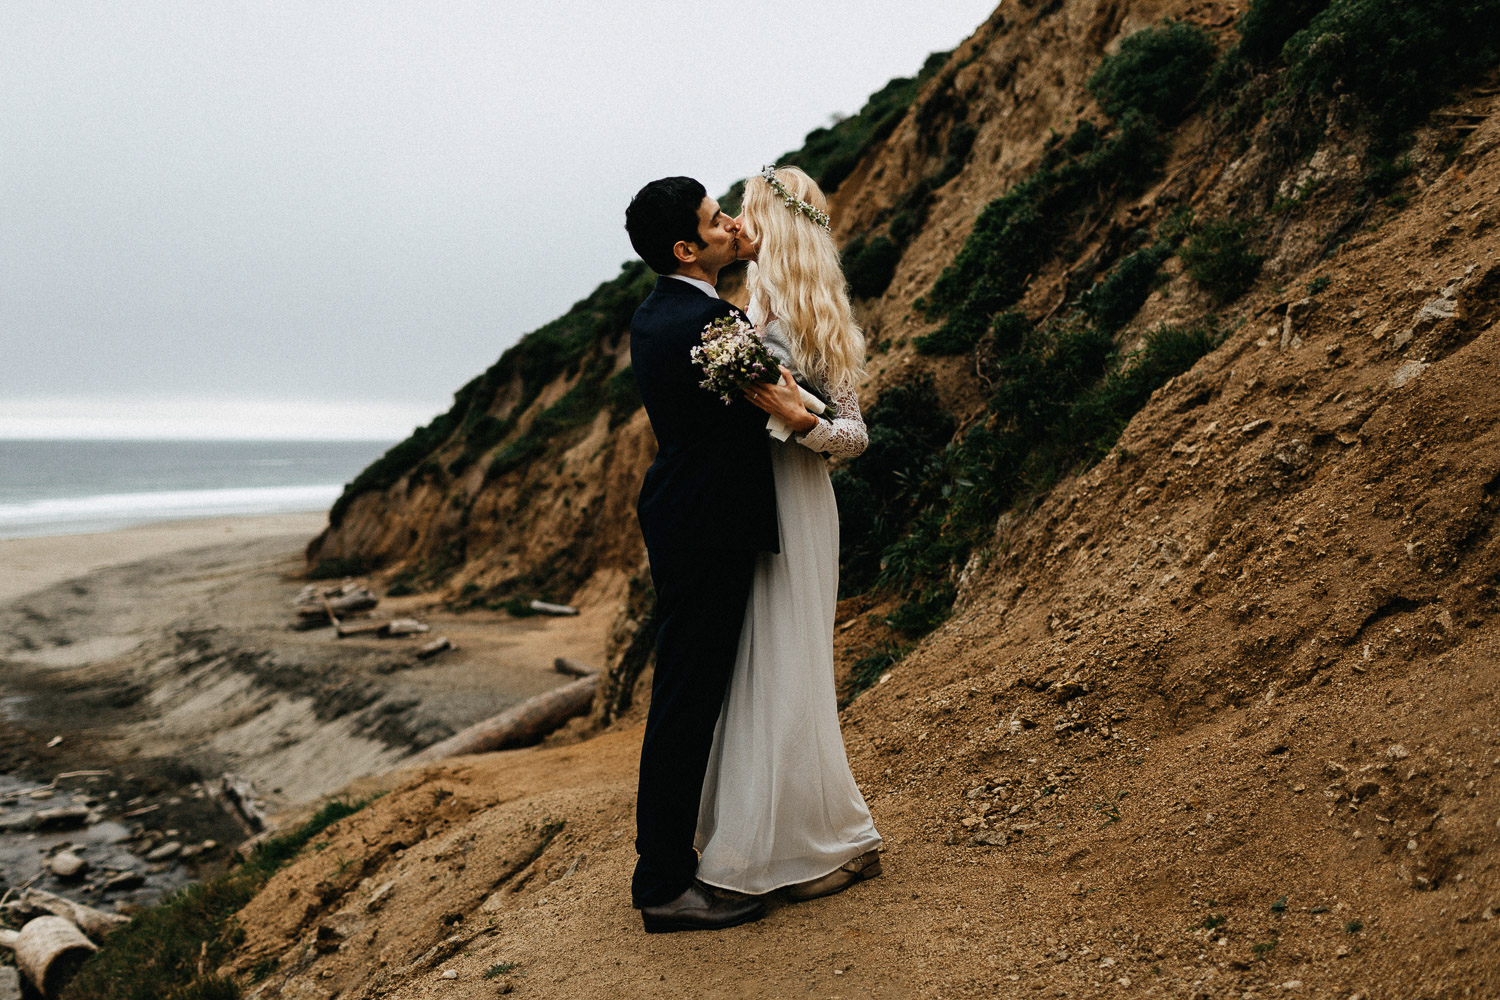 Image of groom and bride kiss each other